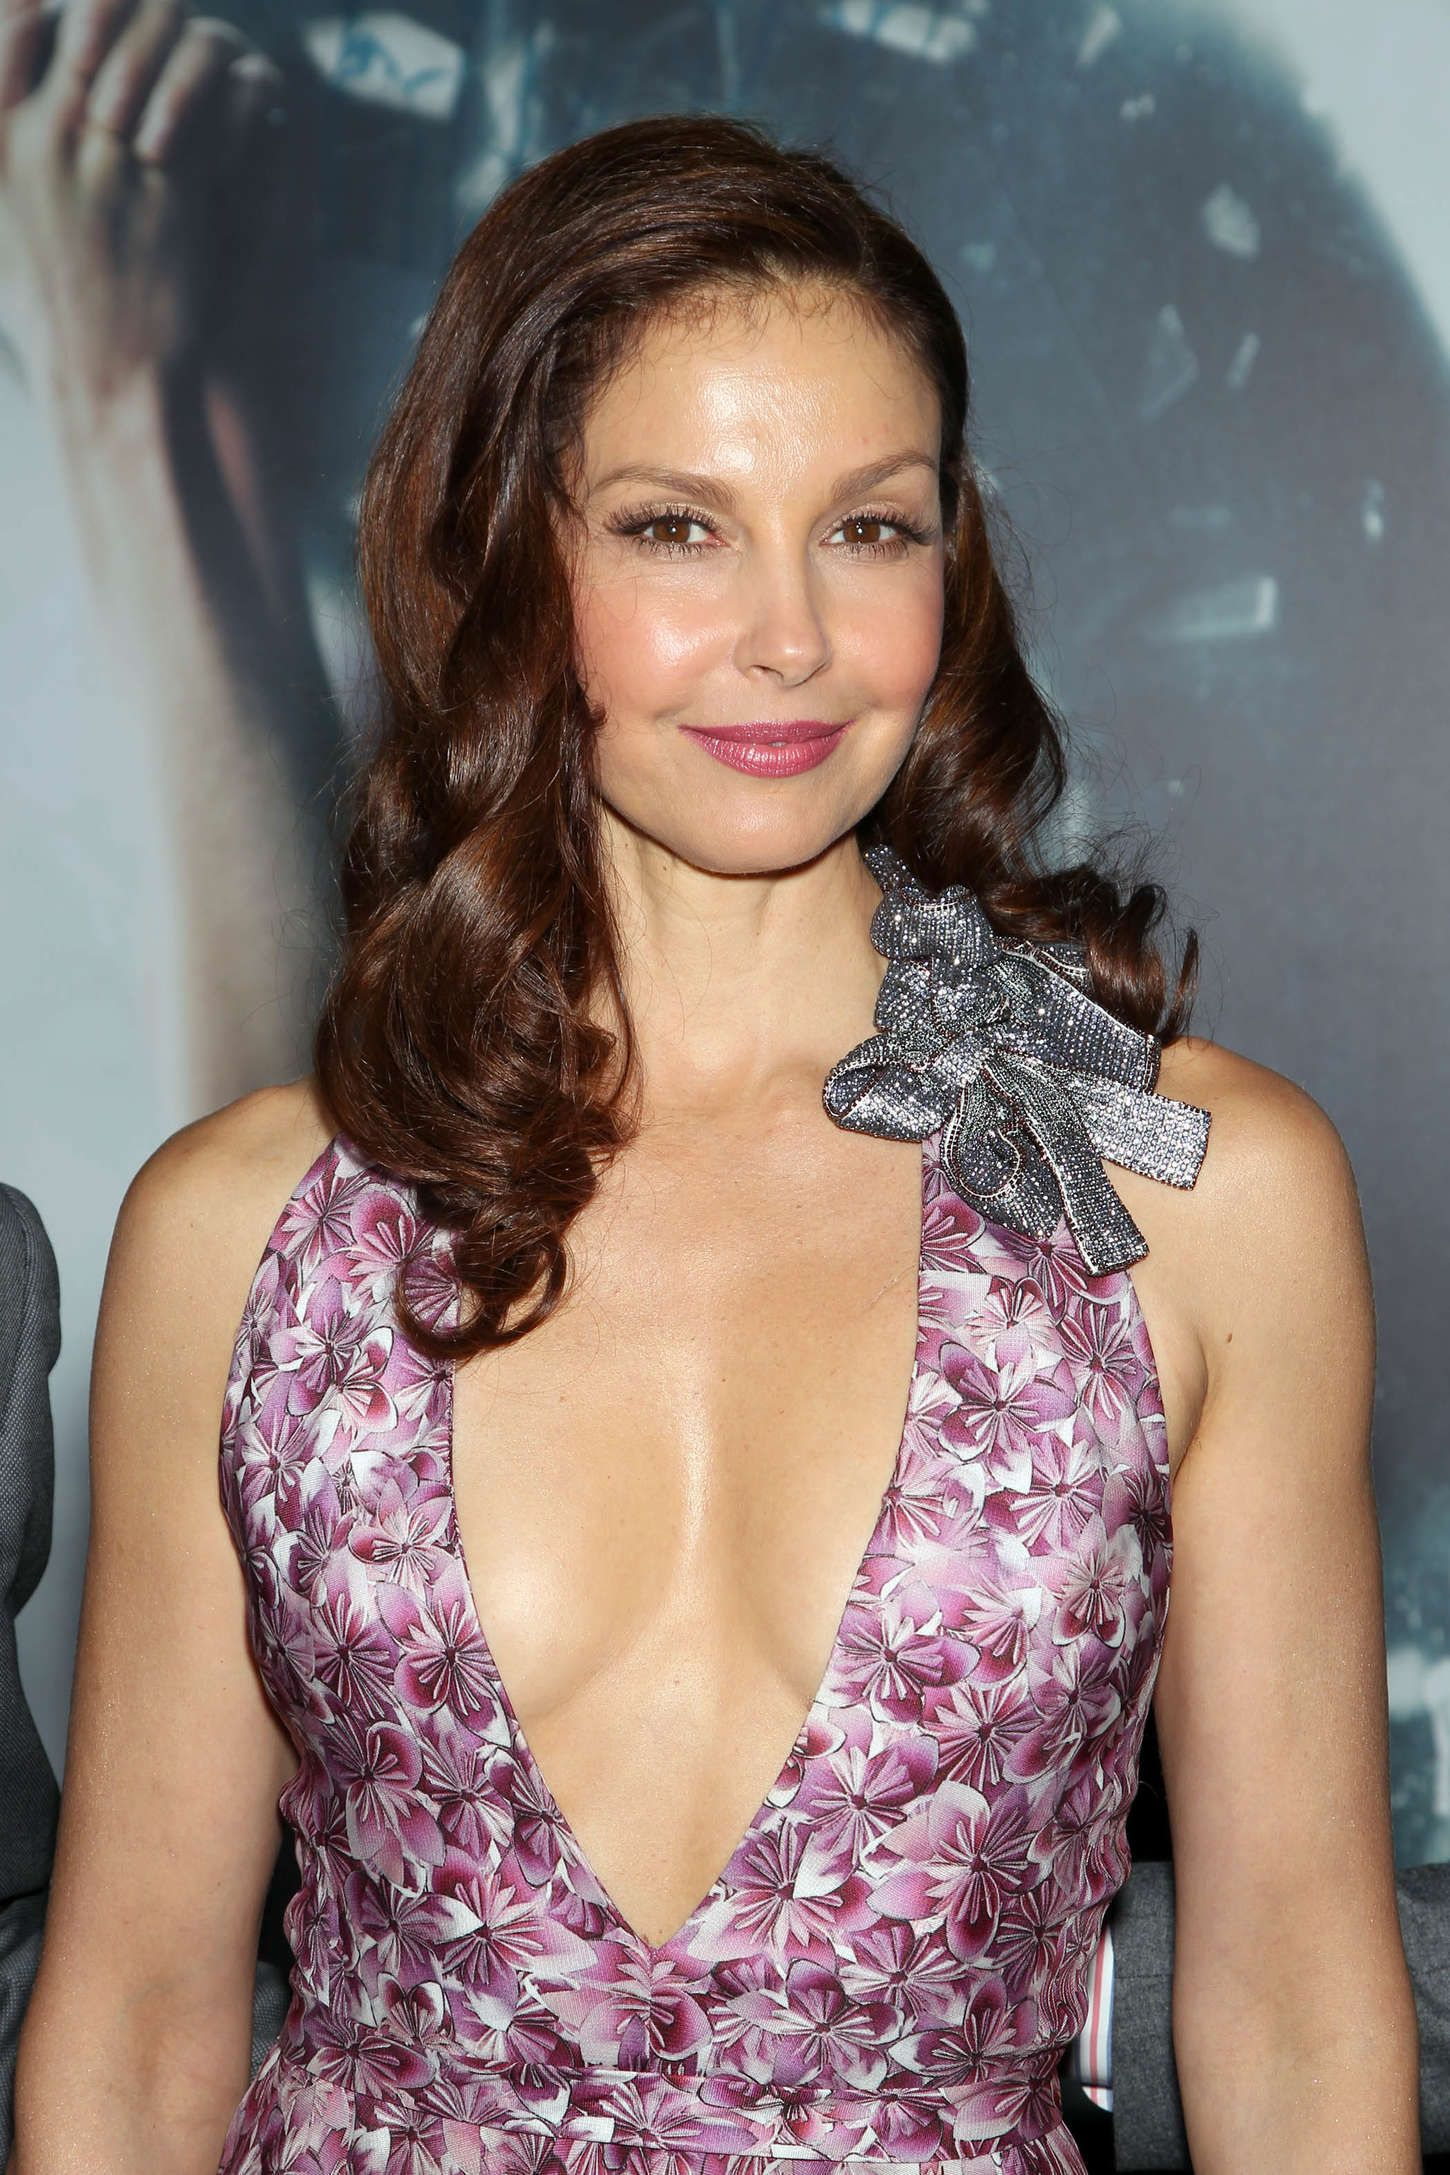 New 3d Wallpaper For Mobile Phone Ashley Judd Wallpapers Hd Backgrounds